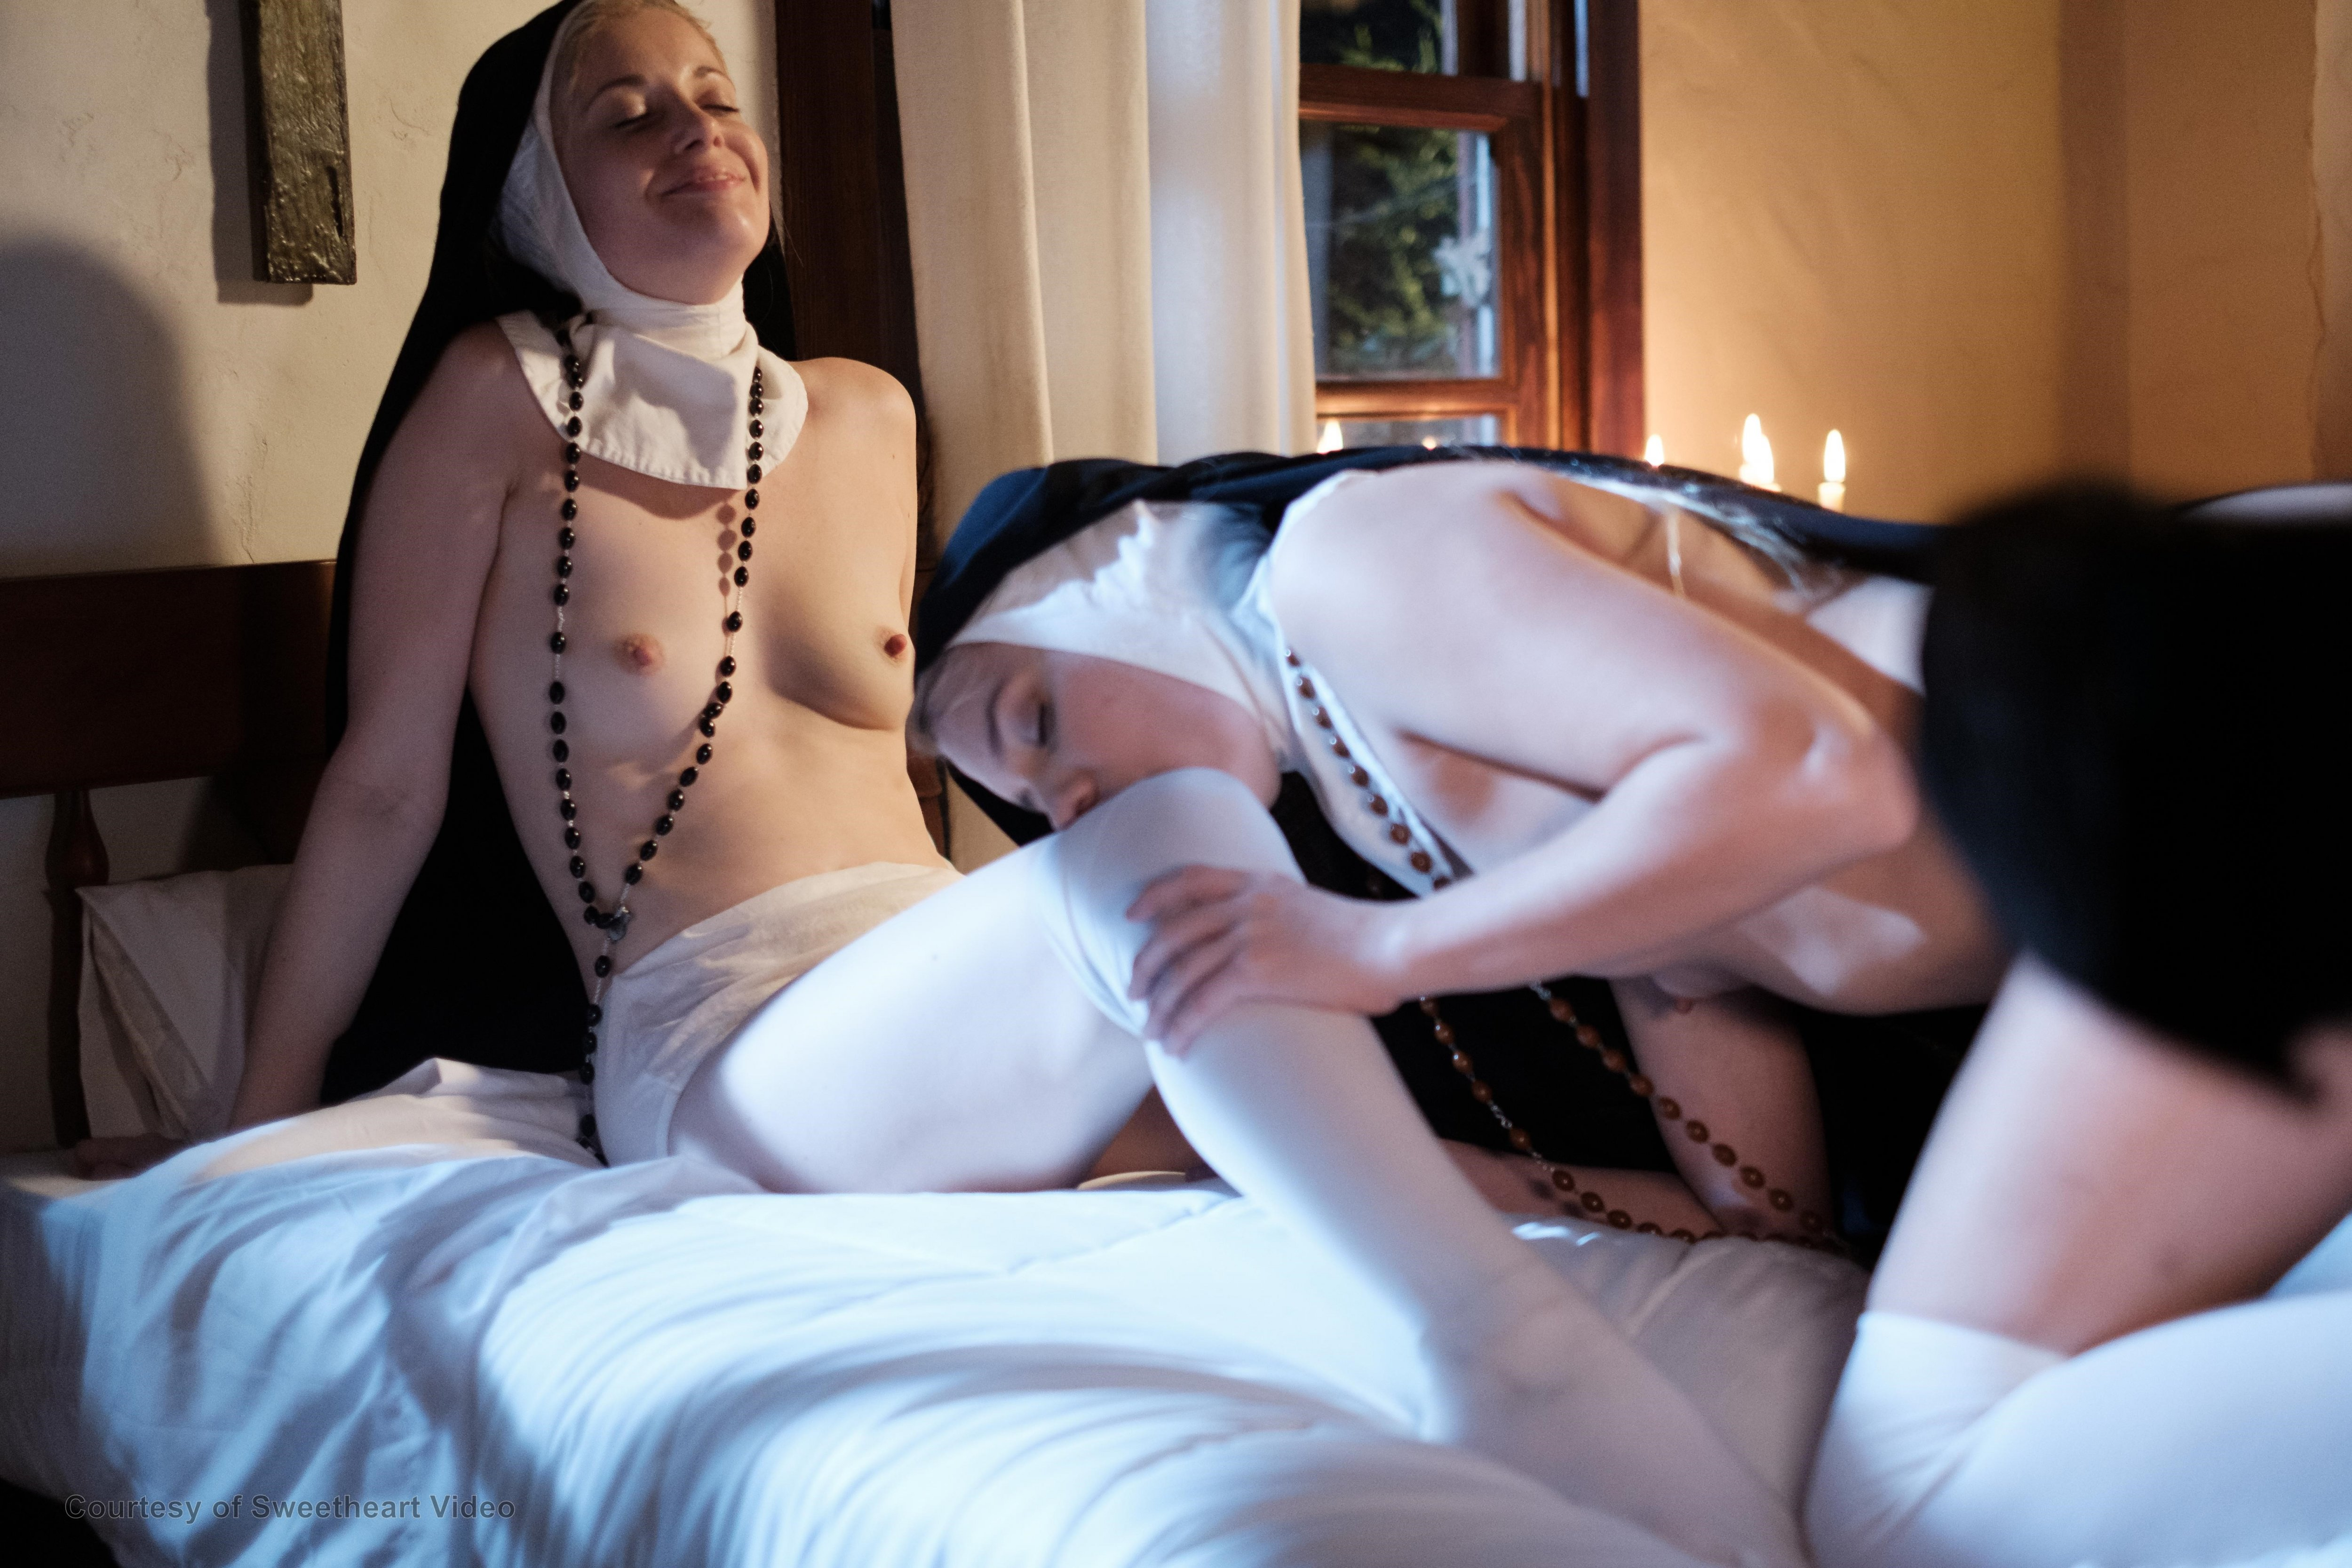 Confessions of a Sinful Nun Volume 2 Movie Image